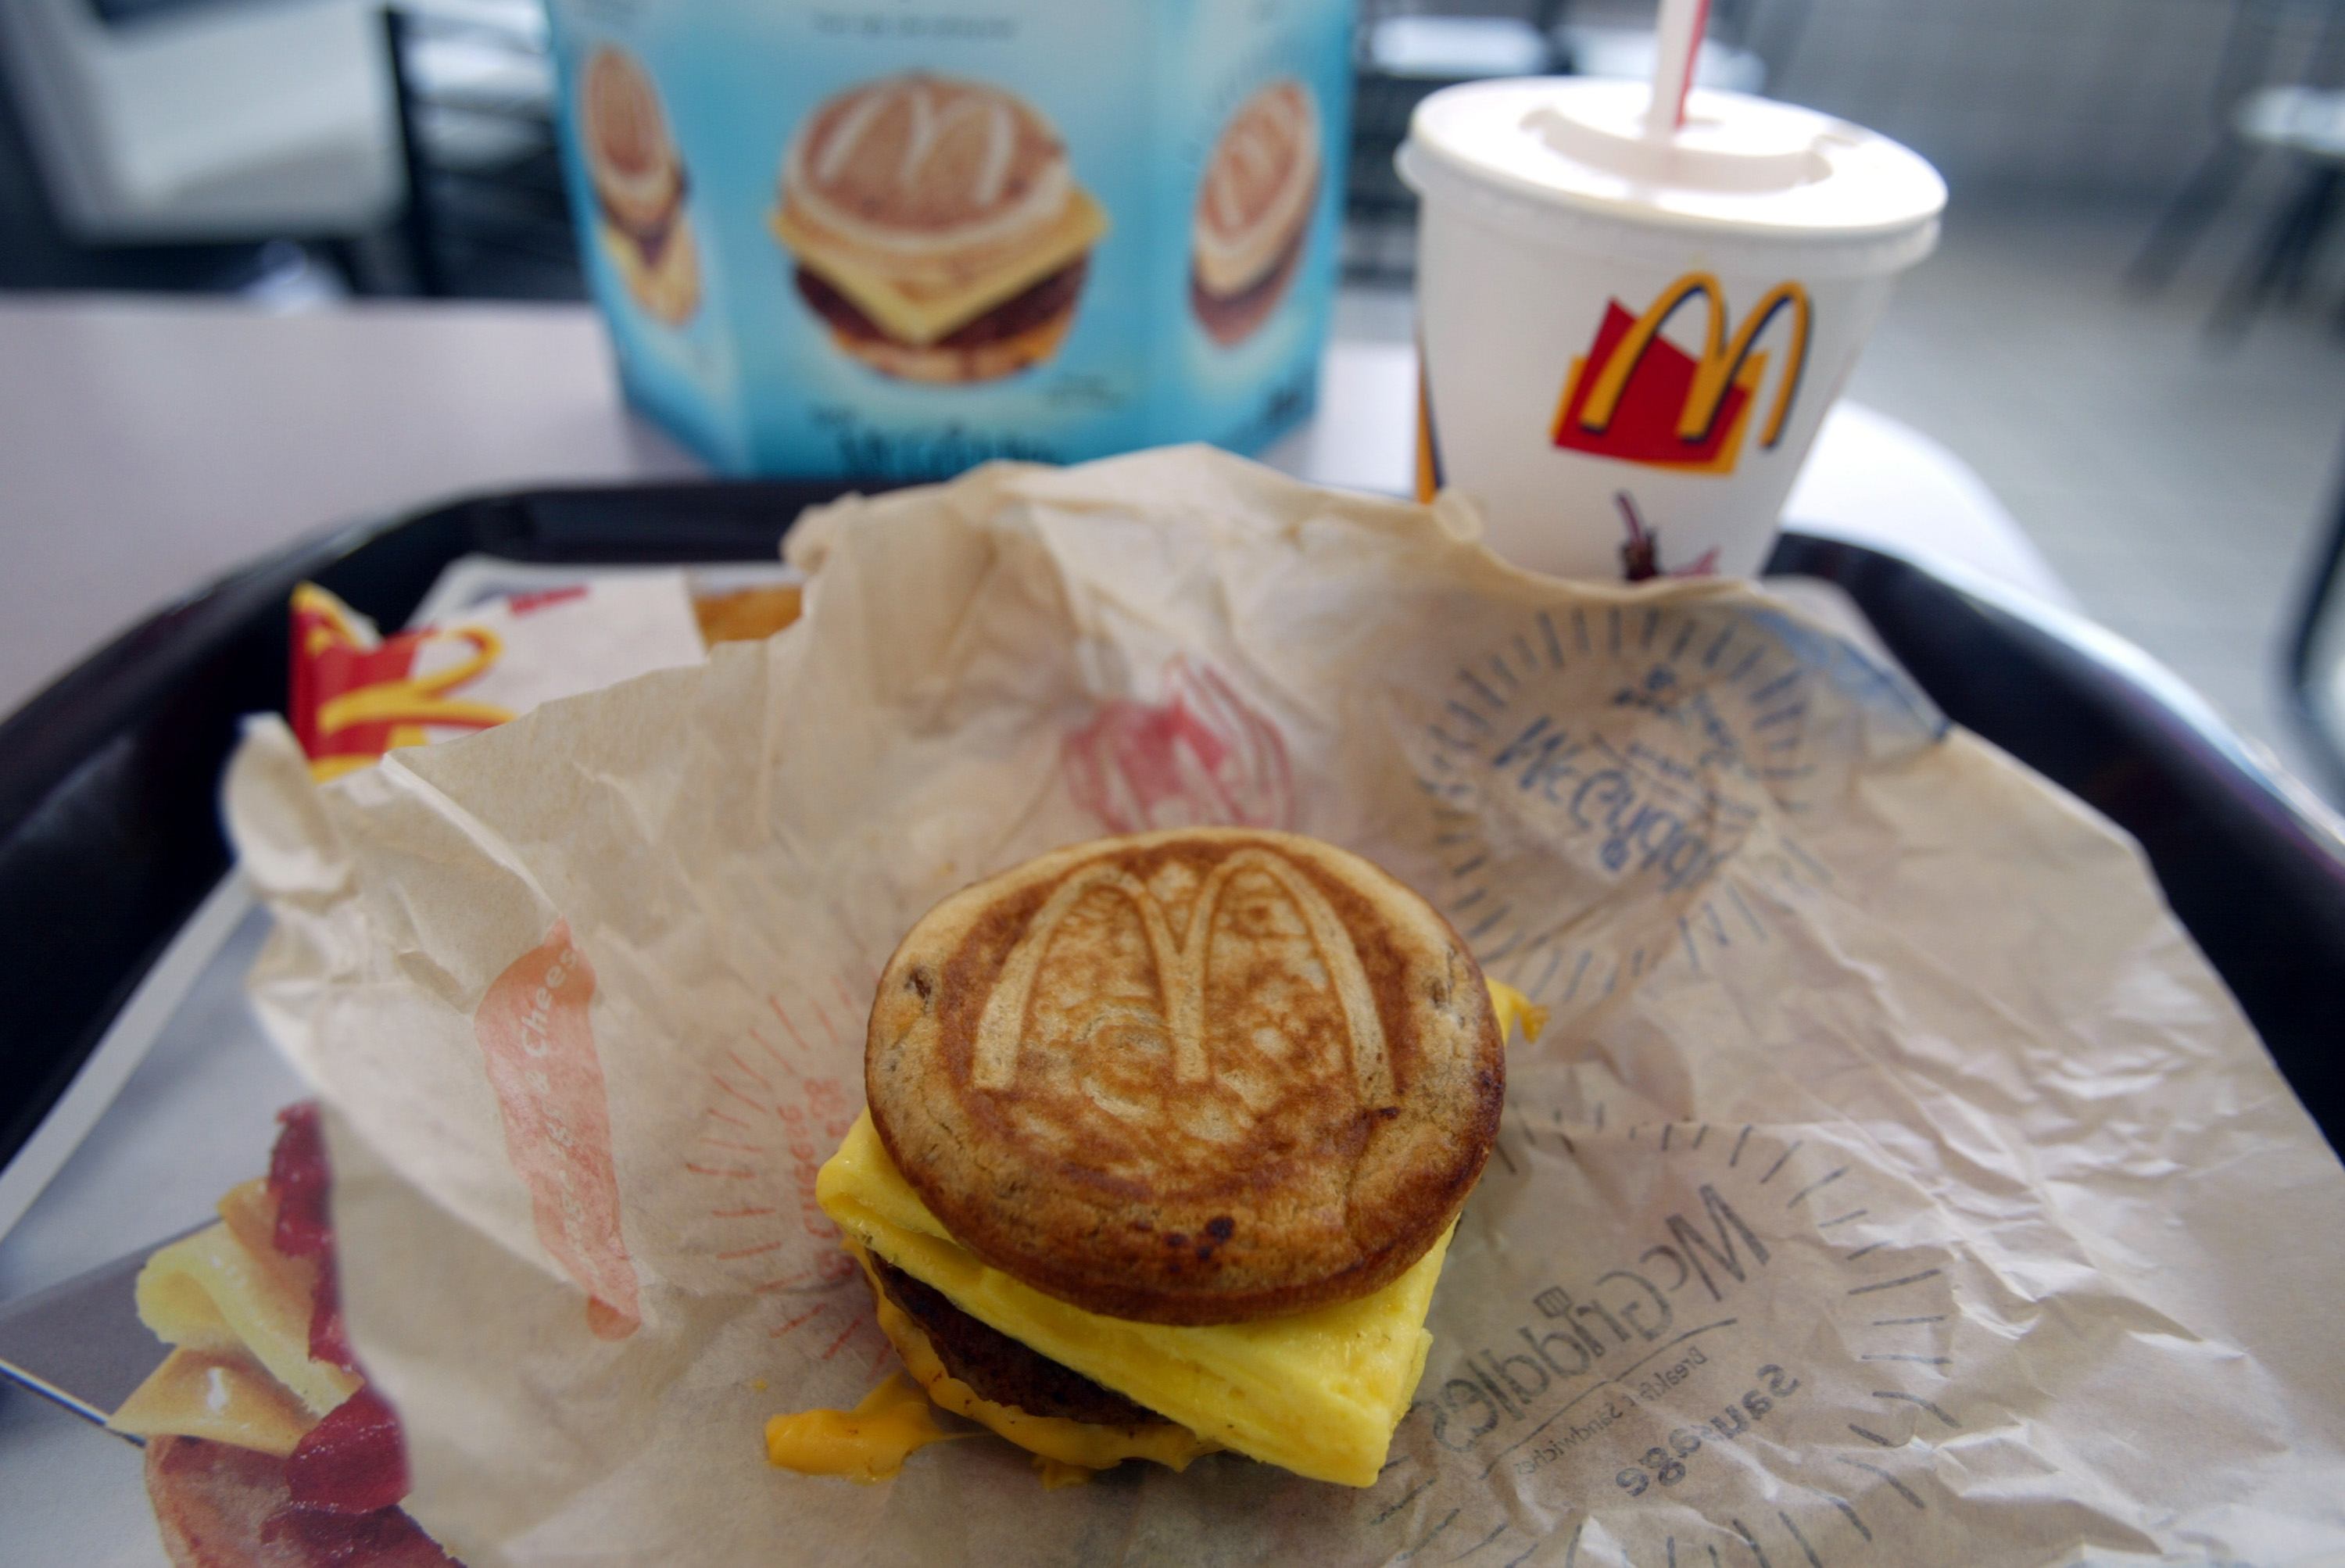 A cheese, sausage and egg McGriddles breakfast sandwich at a McDonald's is shown June 12, 2003 in Coral Gables, Florida.